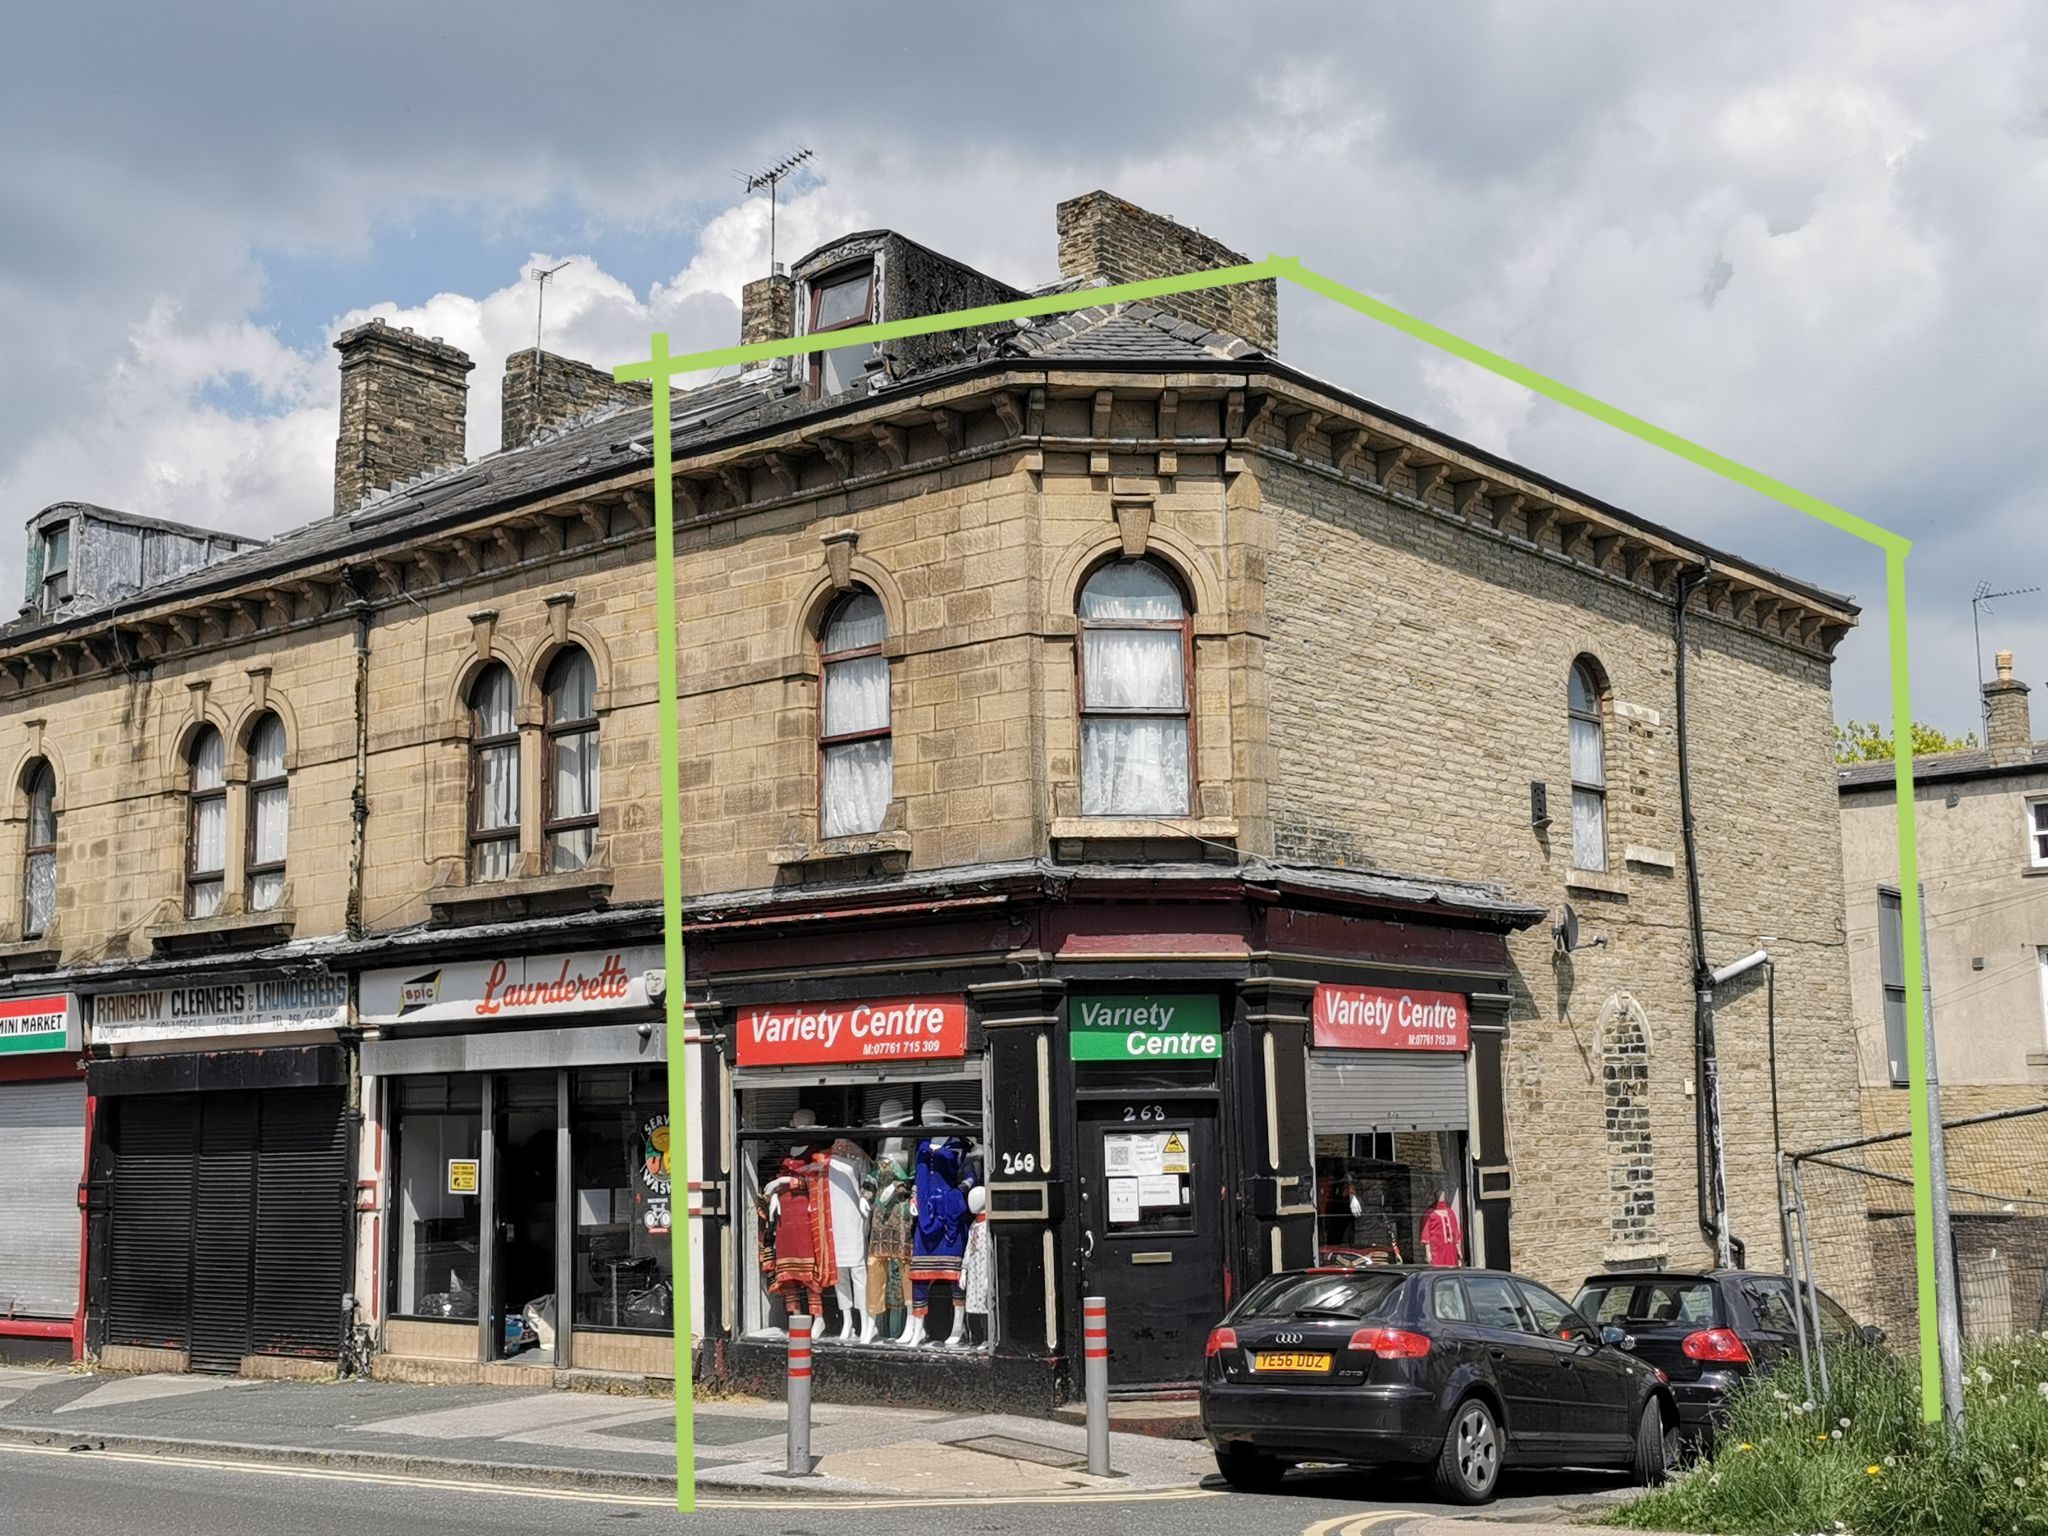 Commercial Property For Sale in Bradford - Photograph 1.